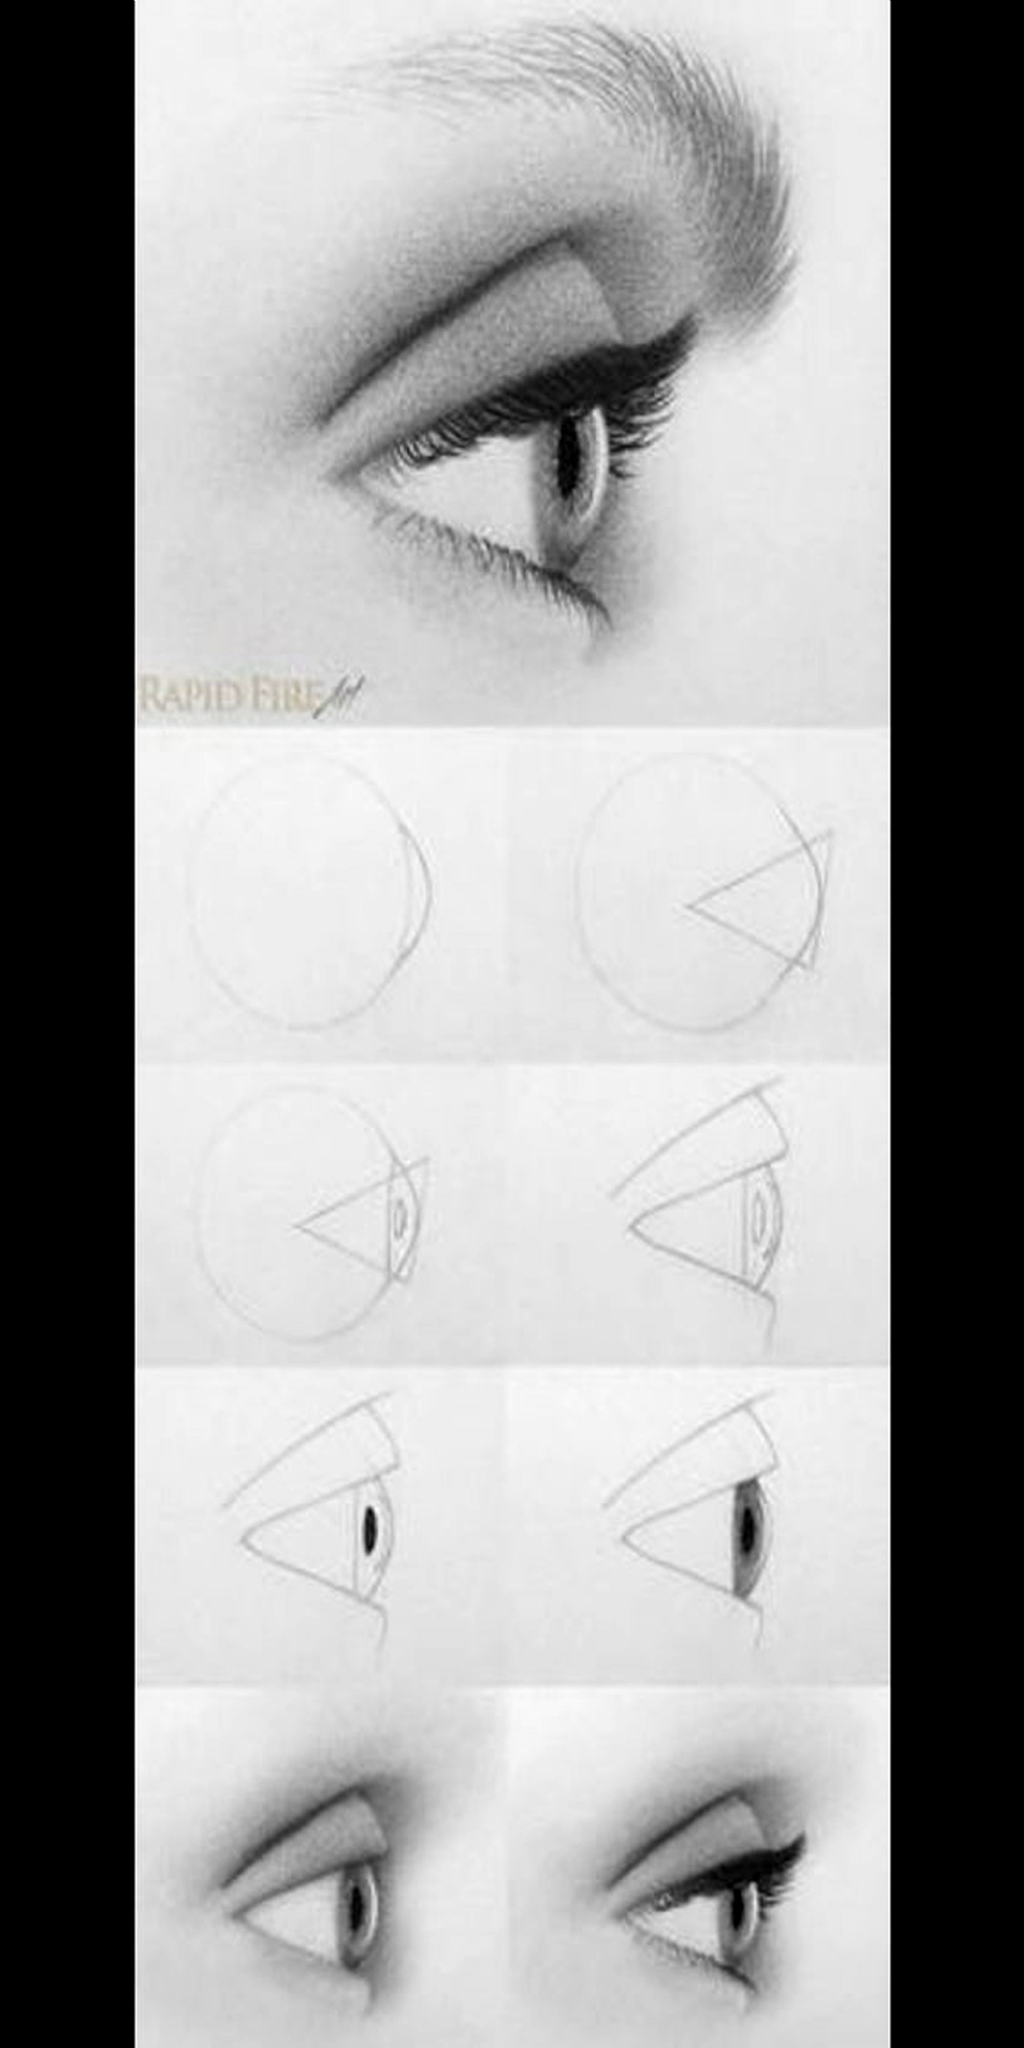 How to draw realistic eye step by step #realisticeye #realistice ... -  How to draw realistic eye step by step #realisticeye #realisticeye #realistische #step #sign  - #draw #Eye #FineArt #OilPaintings #PencilPortrait #realistic #realistice #realisticeye #Step